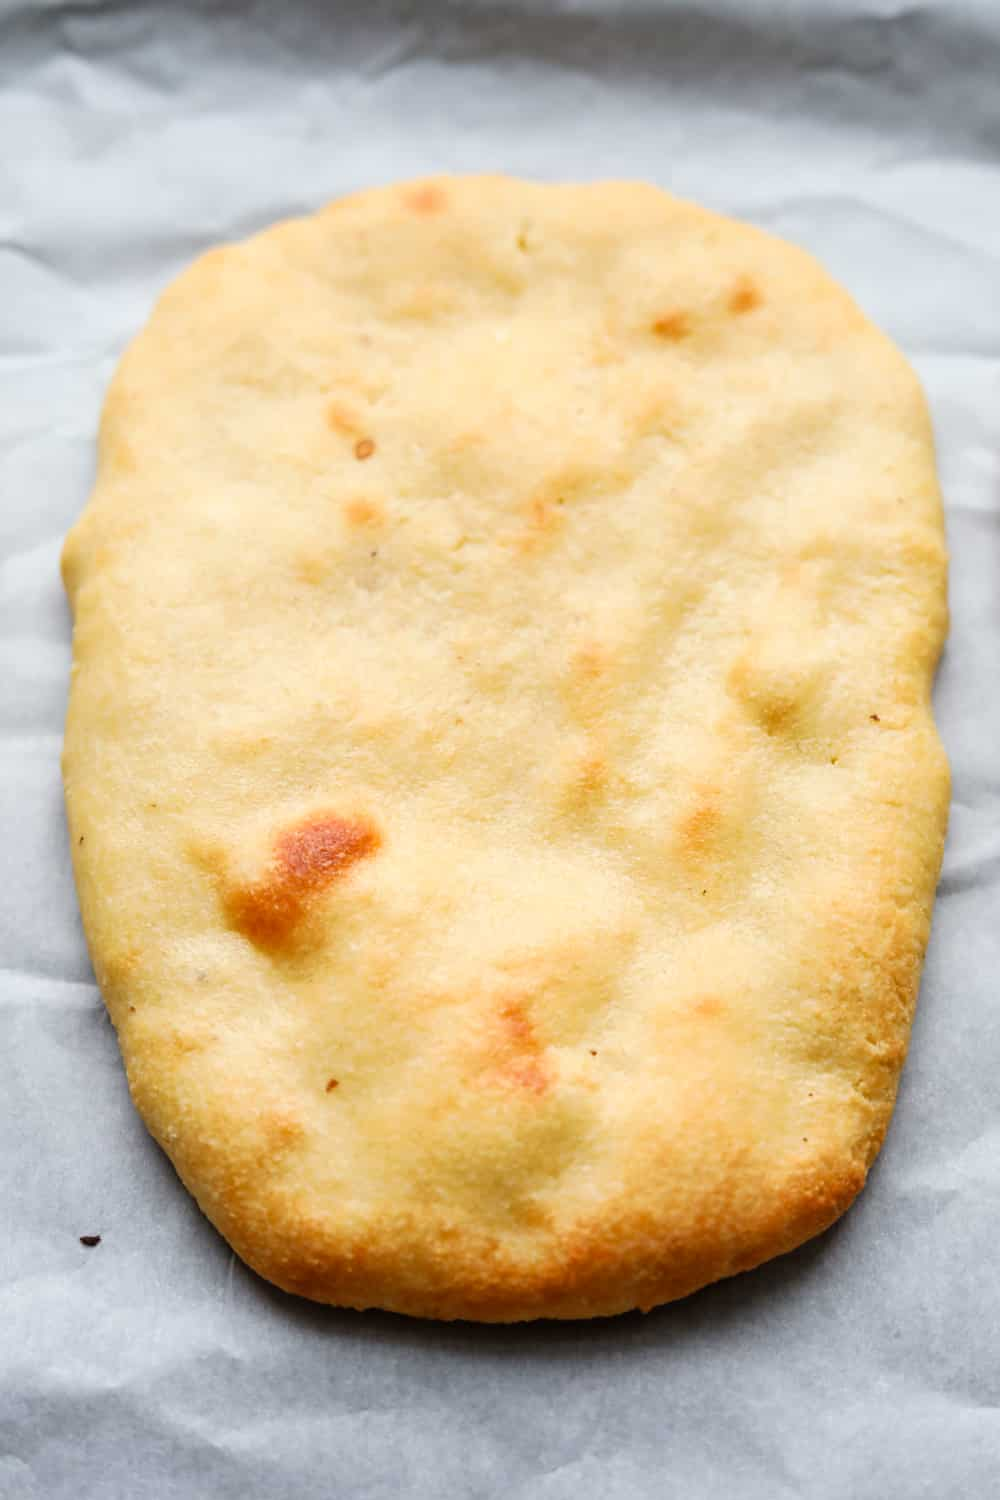 A plain naan bread on a white sheet of parchment paper.